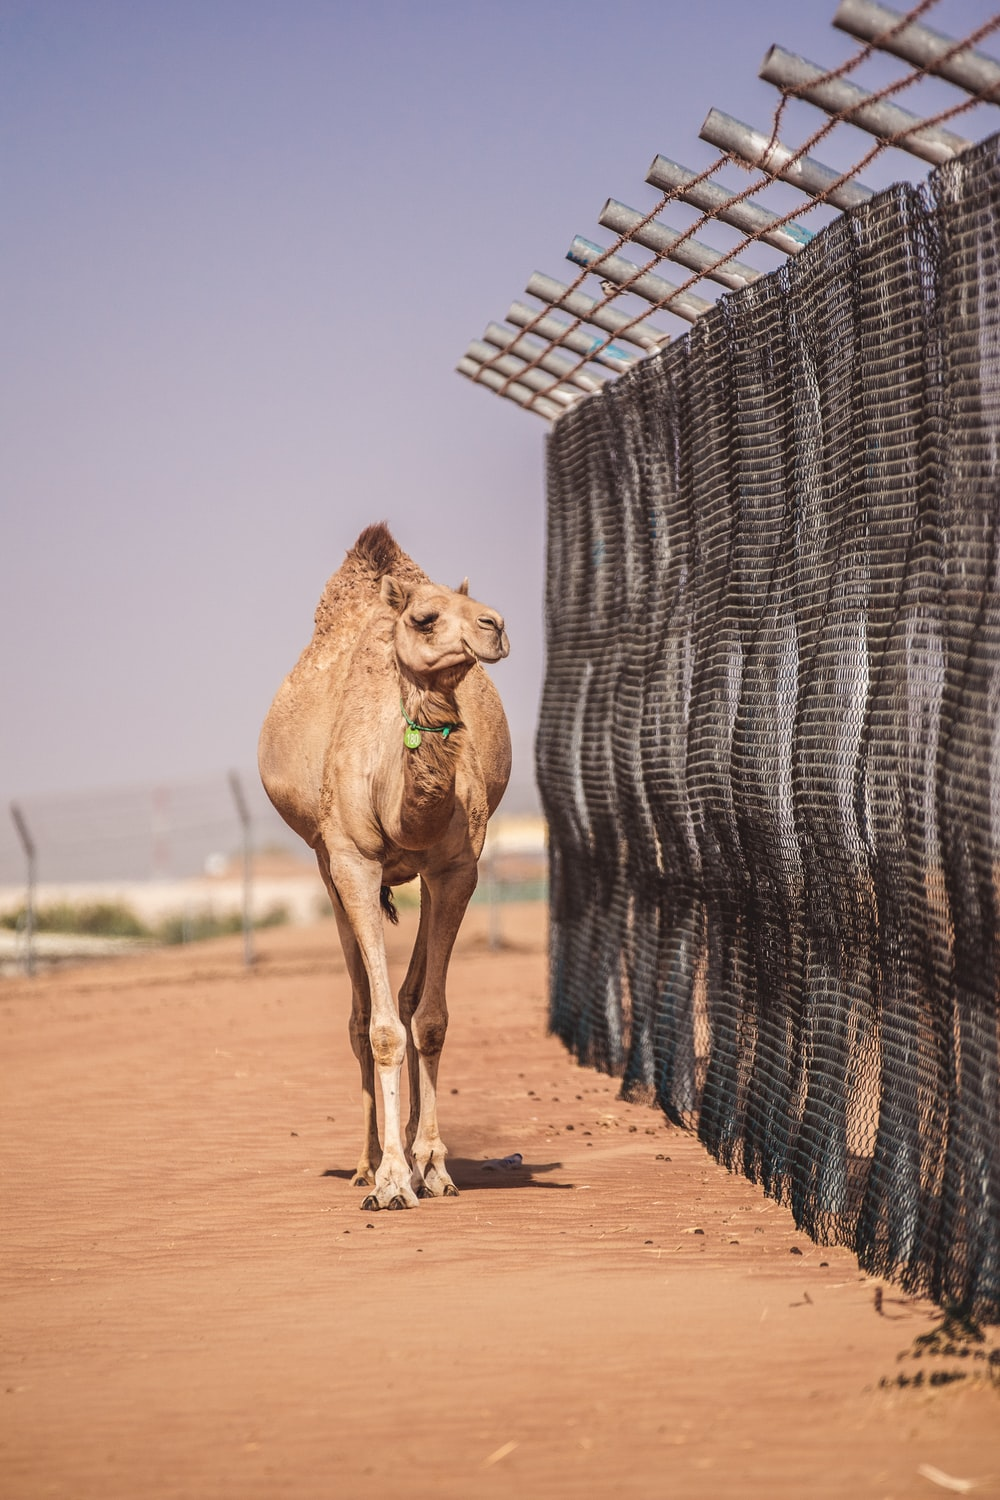 brown camel near gray metal fence during daytime